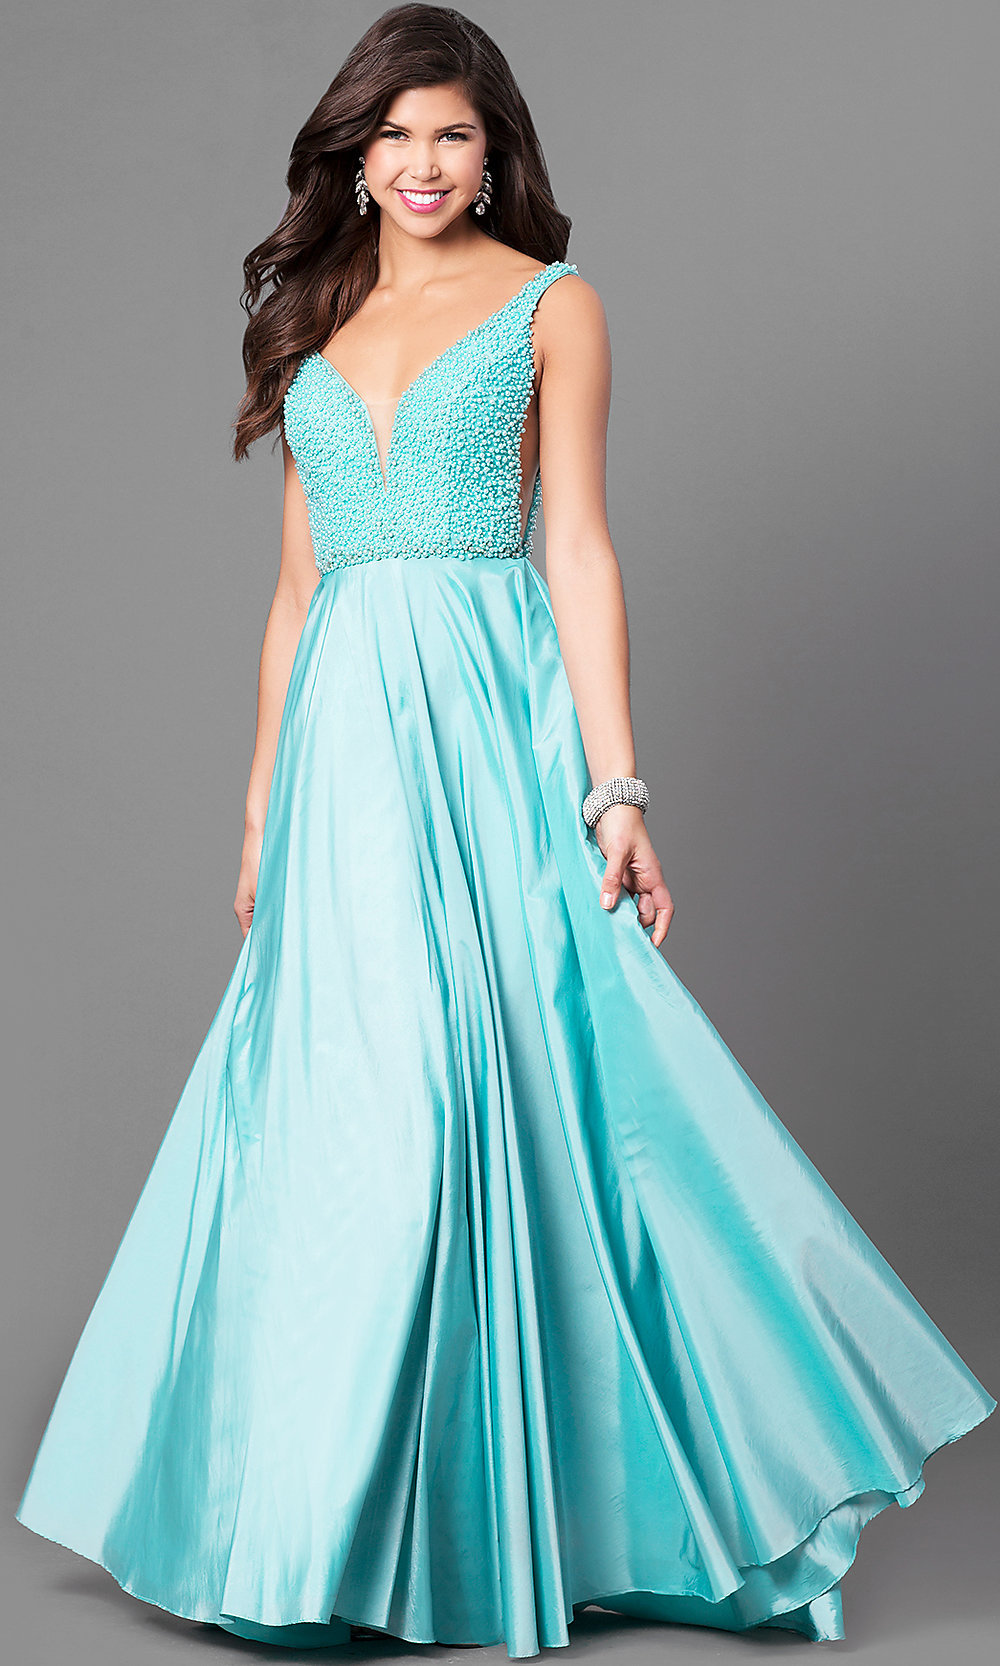 Long Open-Back V-Neck Sherri Hill Prom Dress -PromGirl